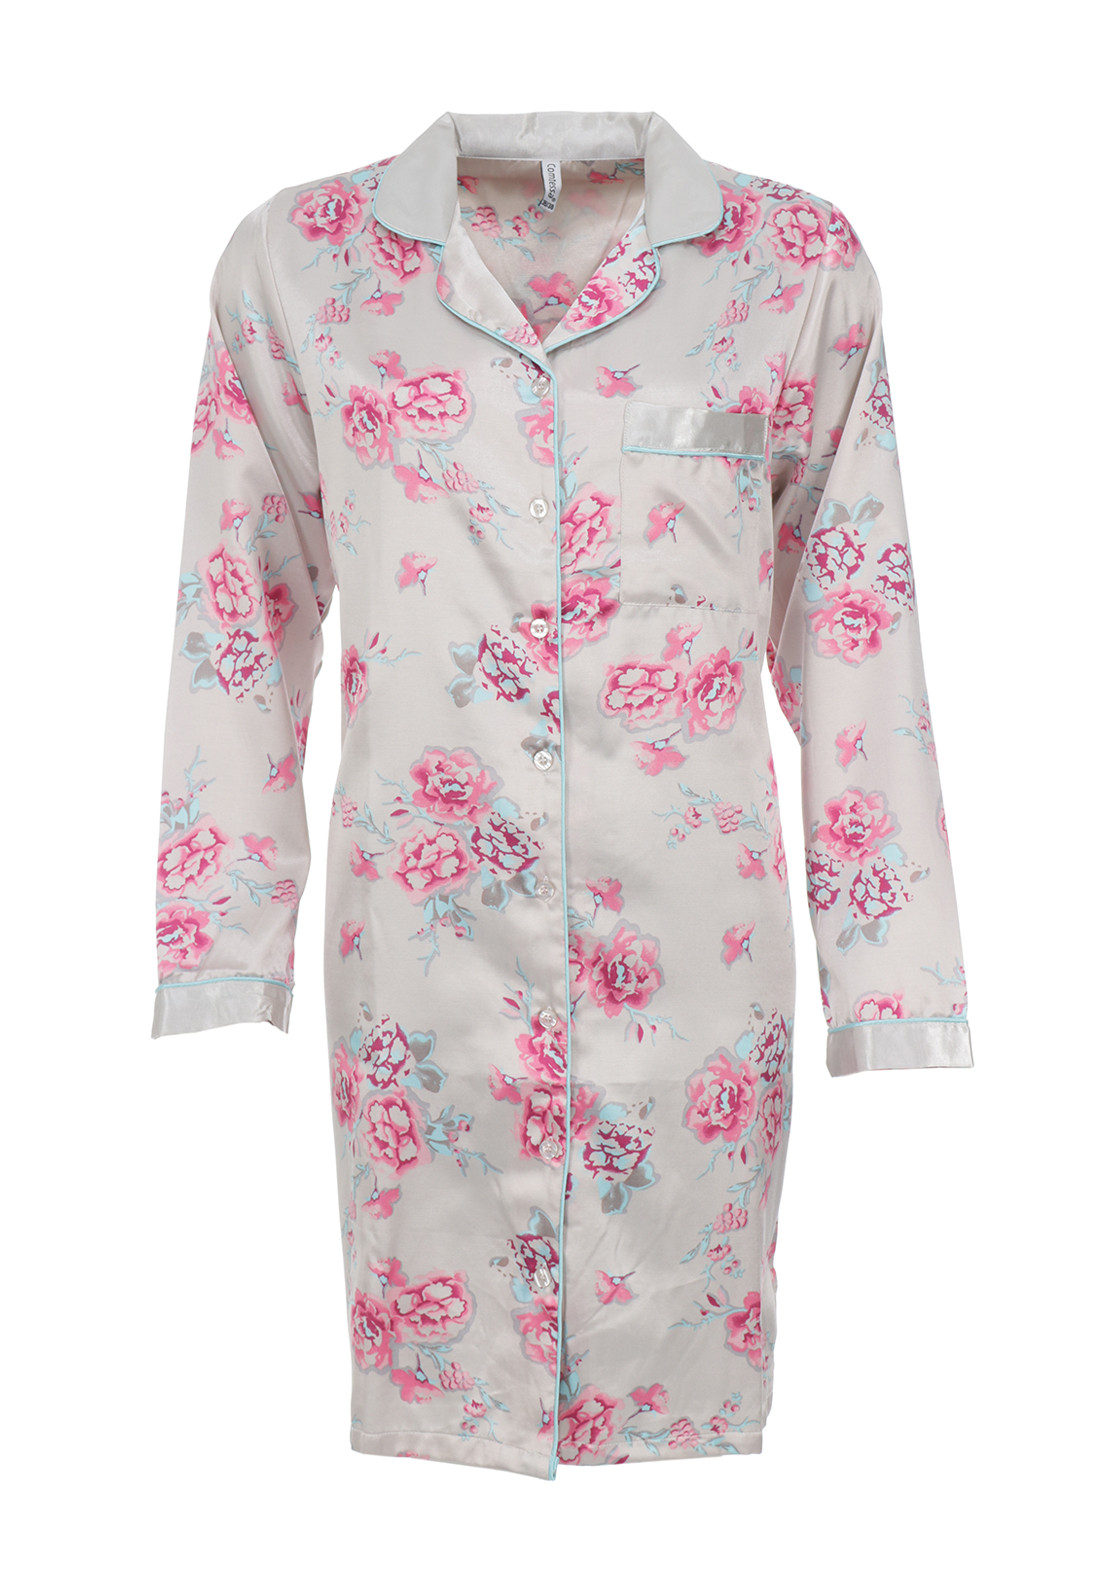 Comtessa Floral Print Satin Nightdress, Grey